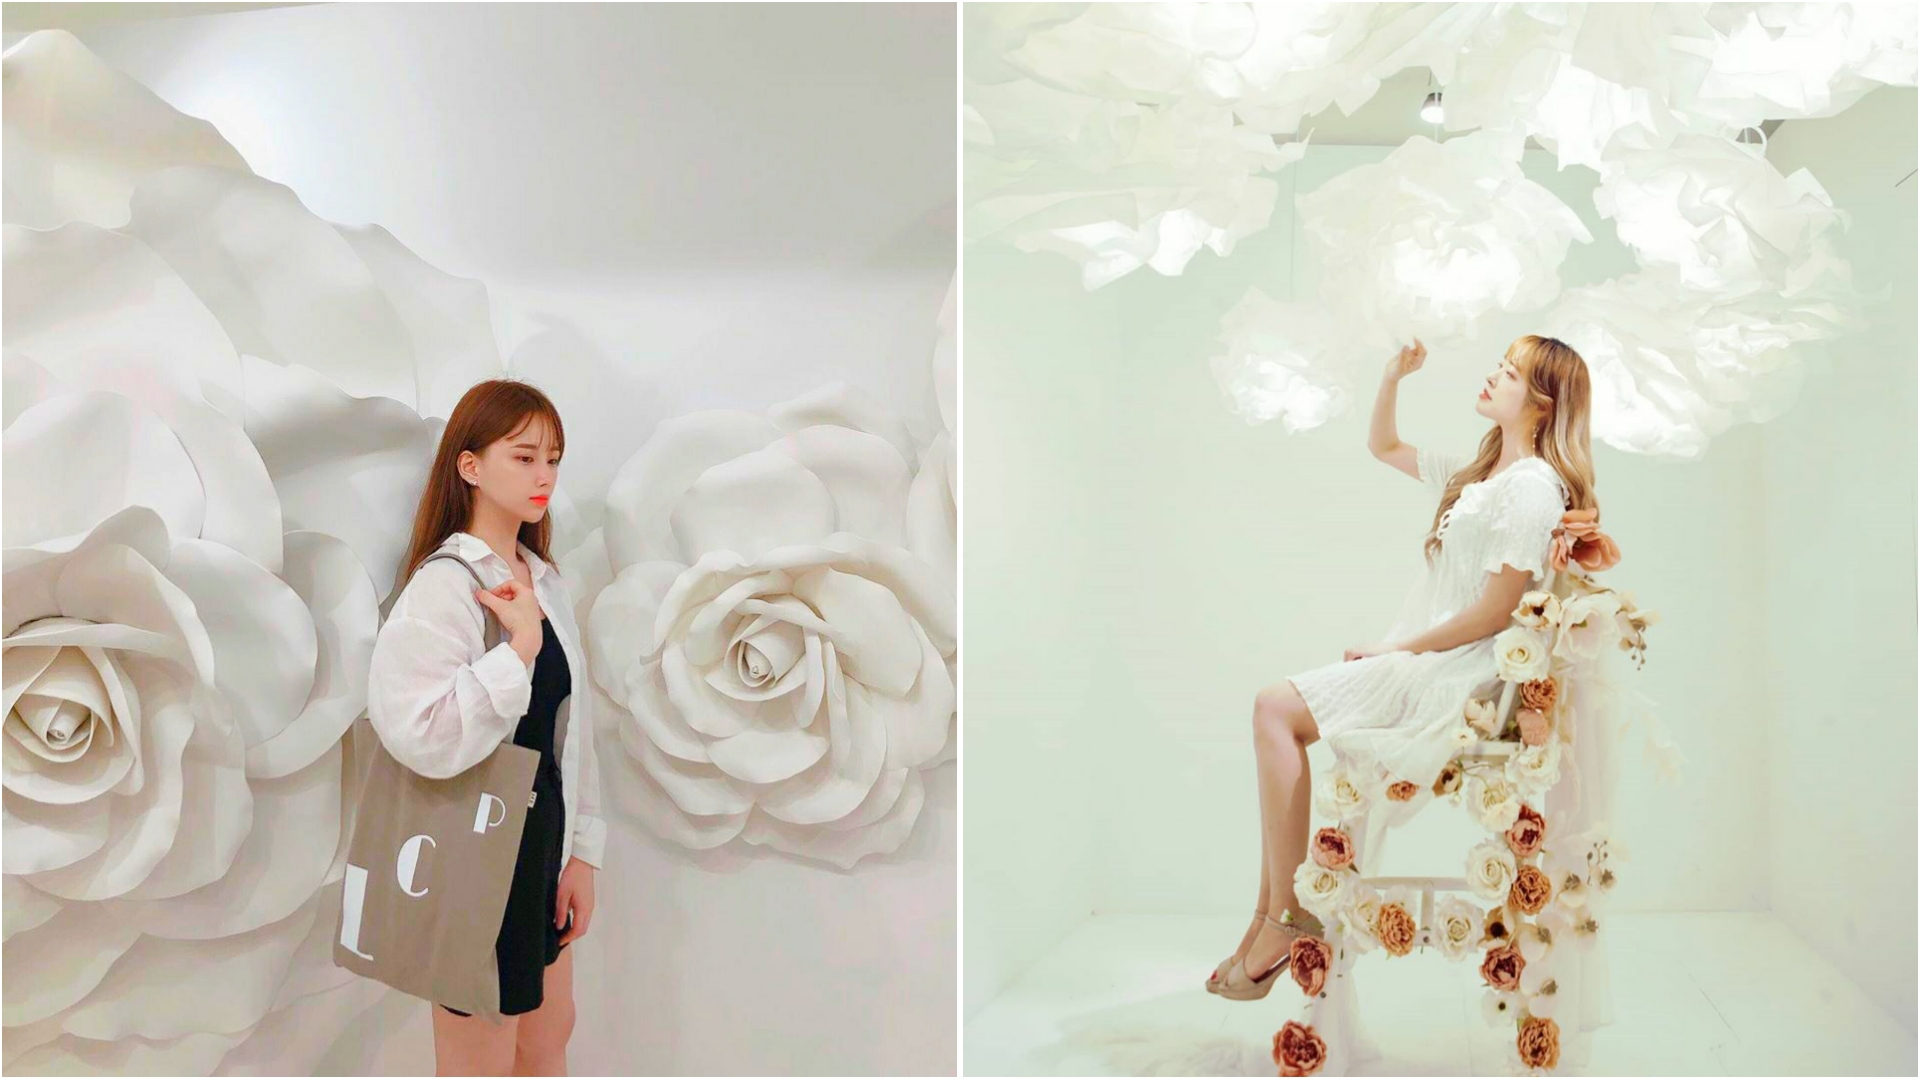 Rose Petal Yeonnam-dong - White Rose and Pure Love installations